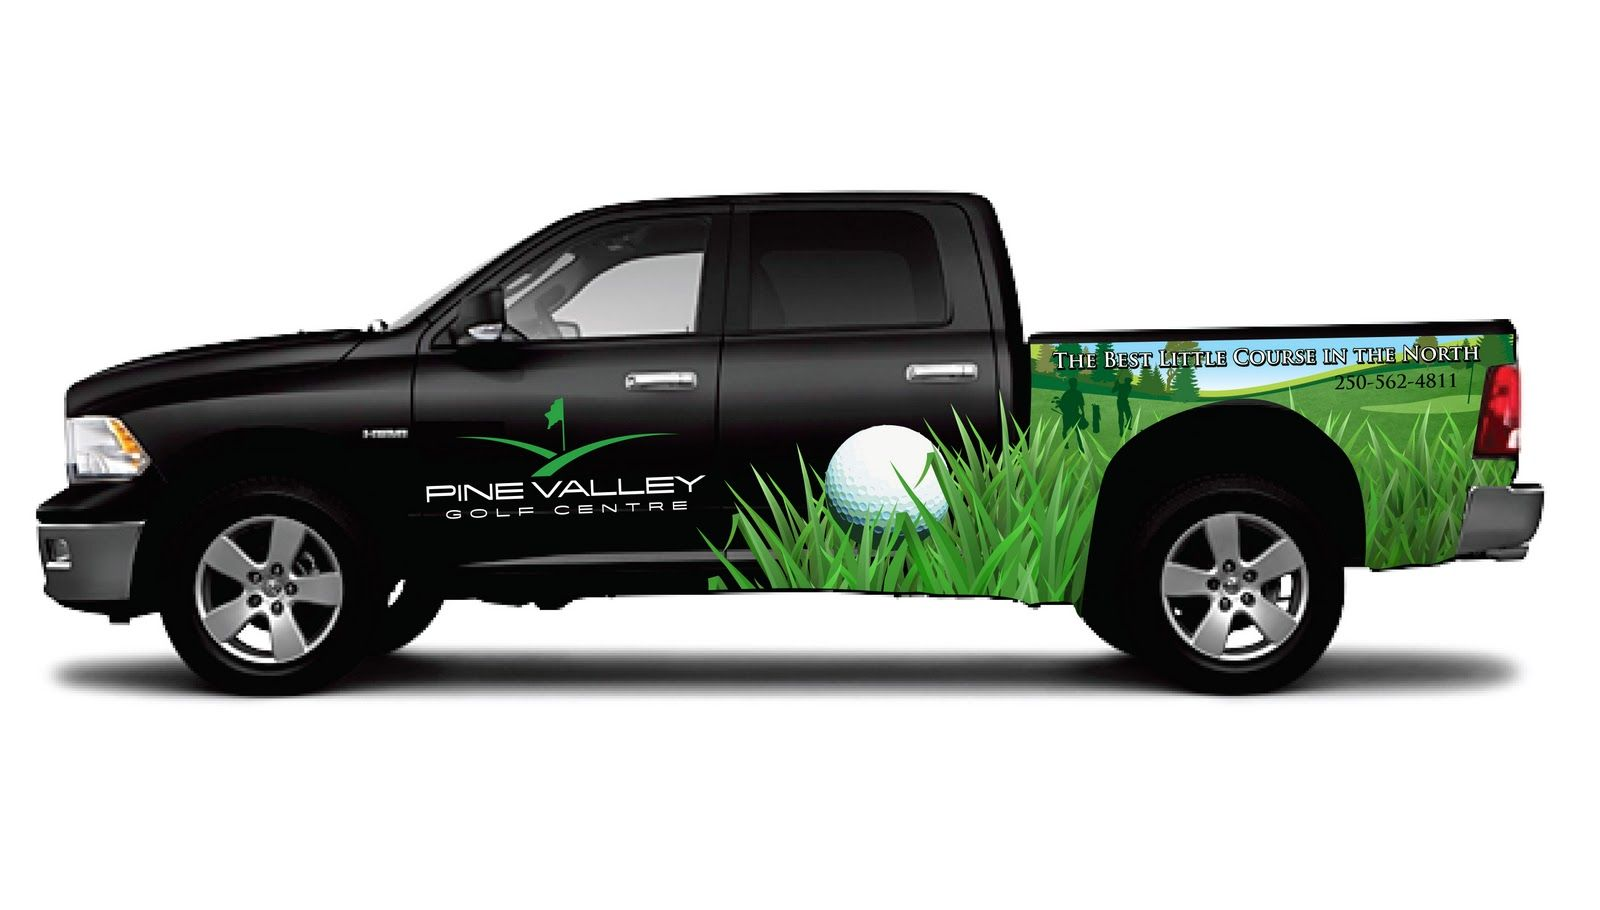 Partial Truck Wrap For A Golf Course Vehicle Signs Mobile - Custom decal graphics on vehiclesvinyl car wraps in houston tx